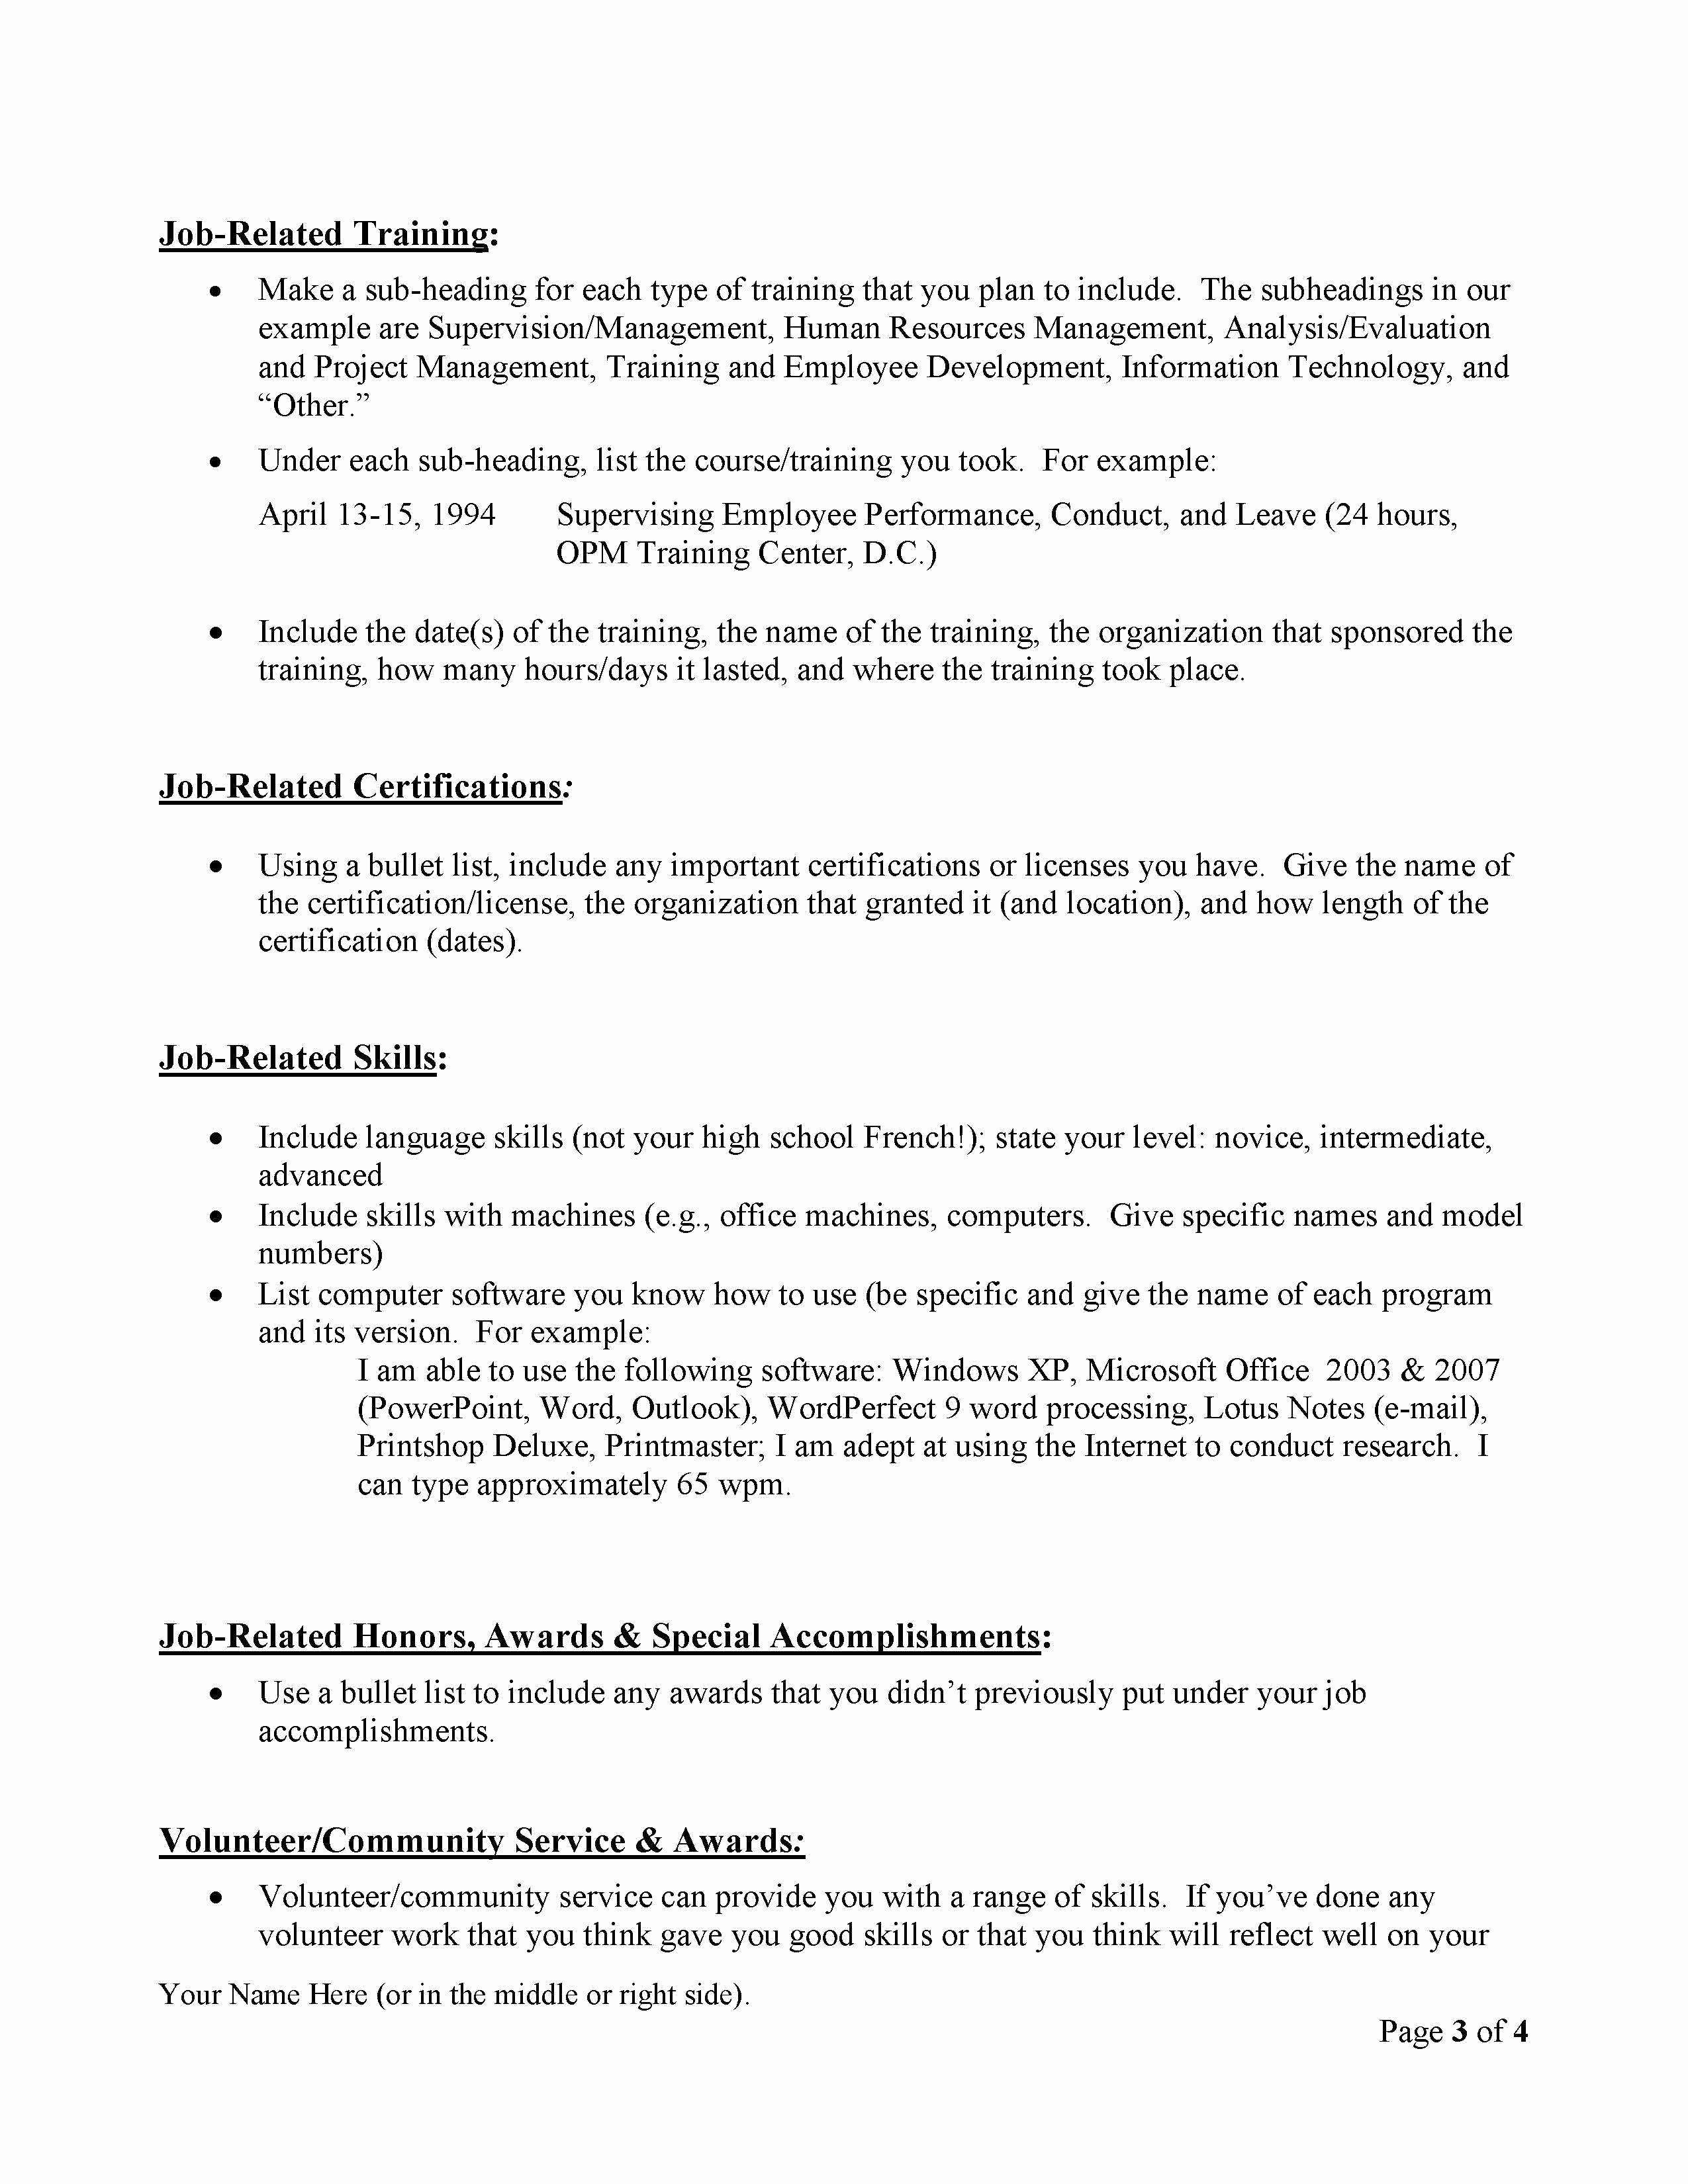 Best Website to Post Resume Best Website to Post Resume